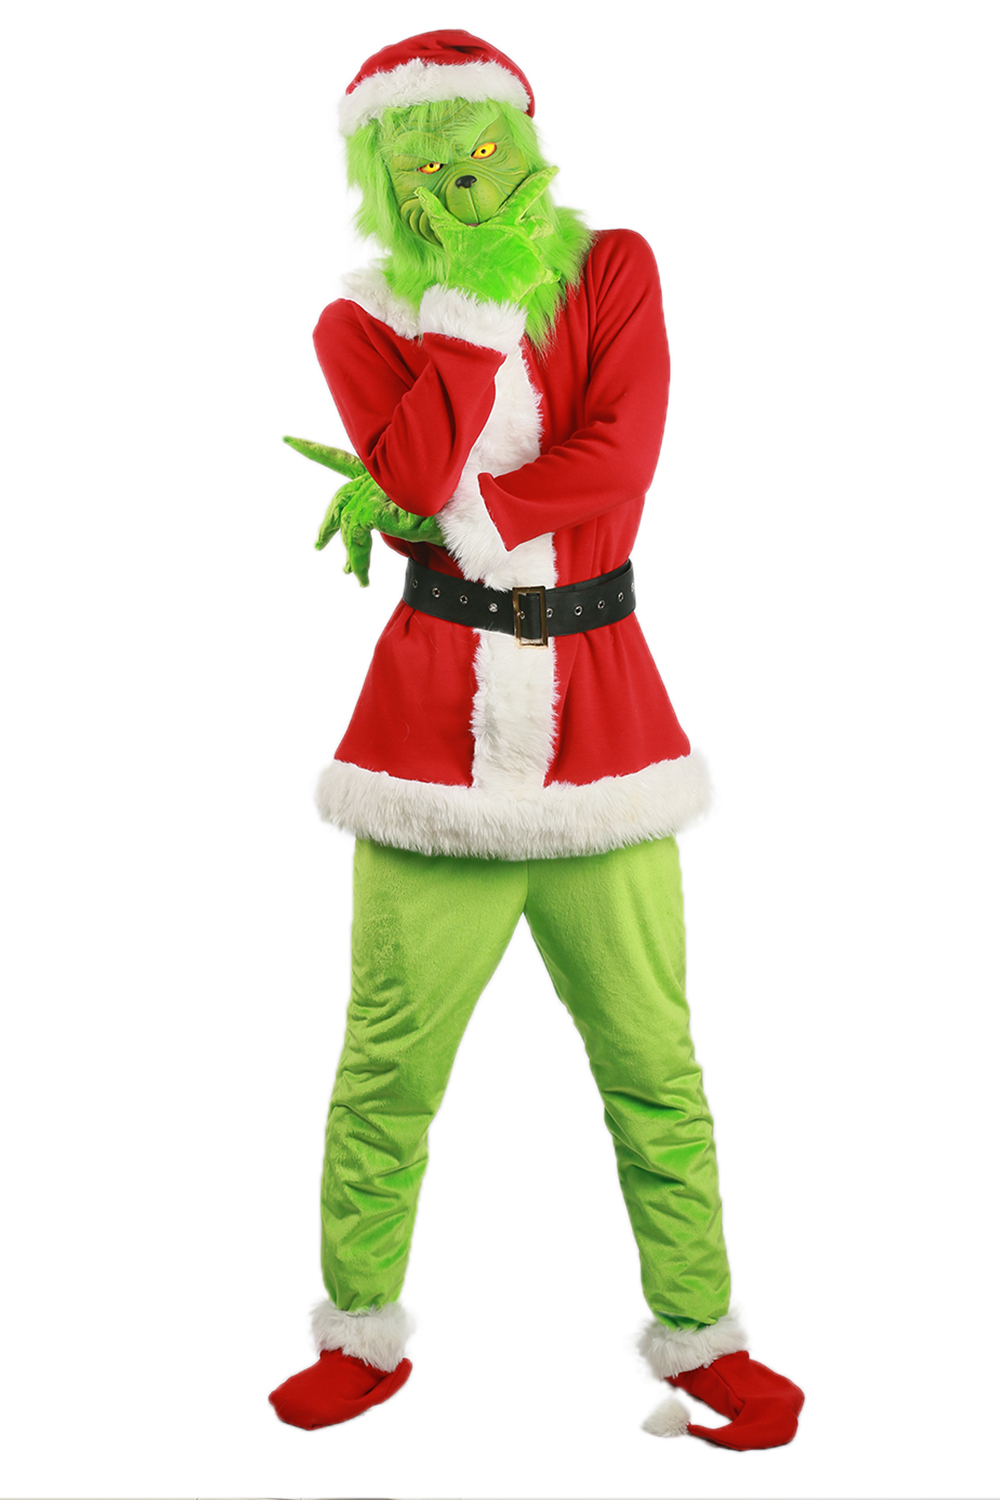 Marvelous How The Grinch Stole Christmas Full Movie #2: 2017-Grinch-Costume-Movie-How-the-Grinch-Stole-Christmas-Cosplay-Outfit-Full-Set-Fancy-Dress-for.jpg